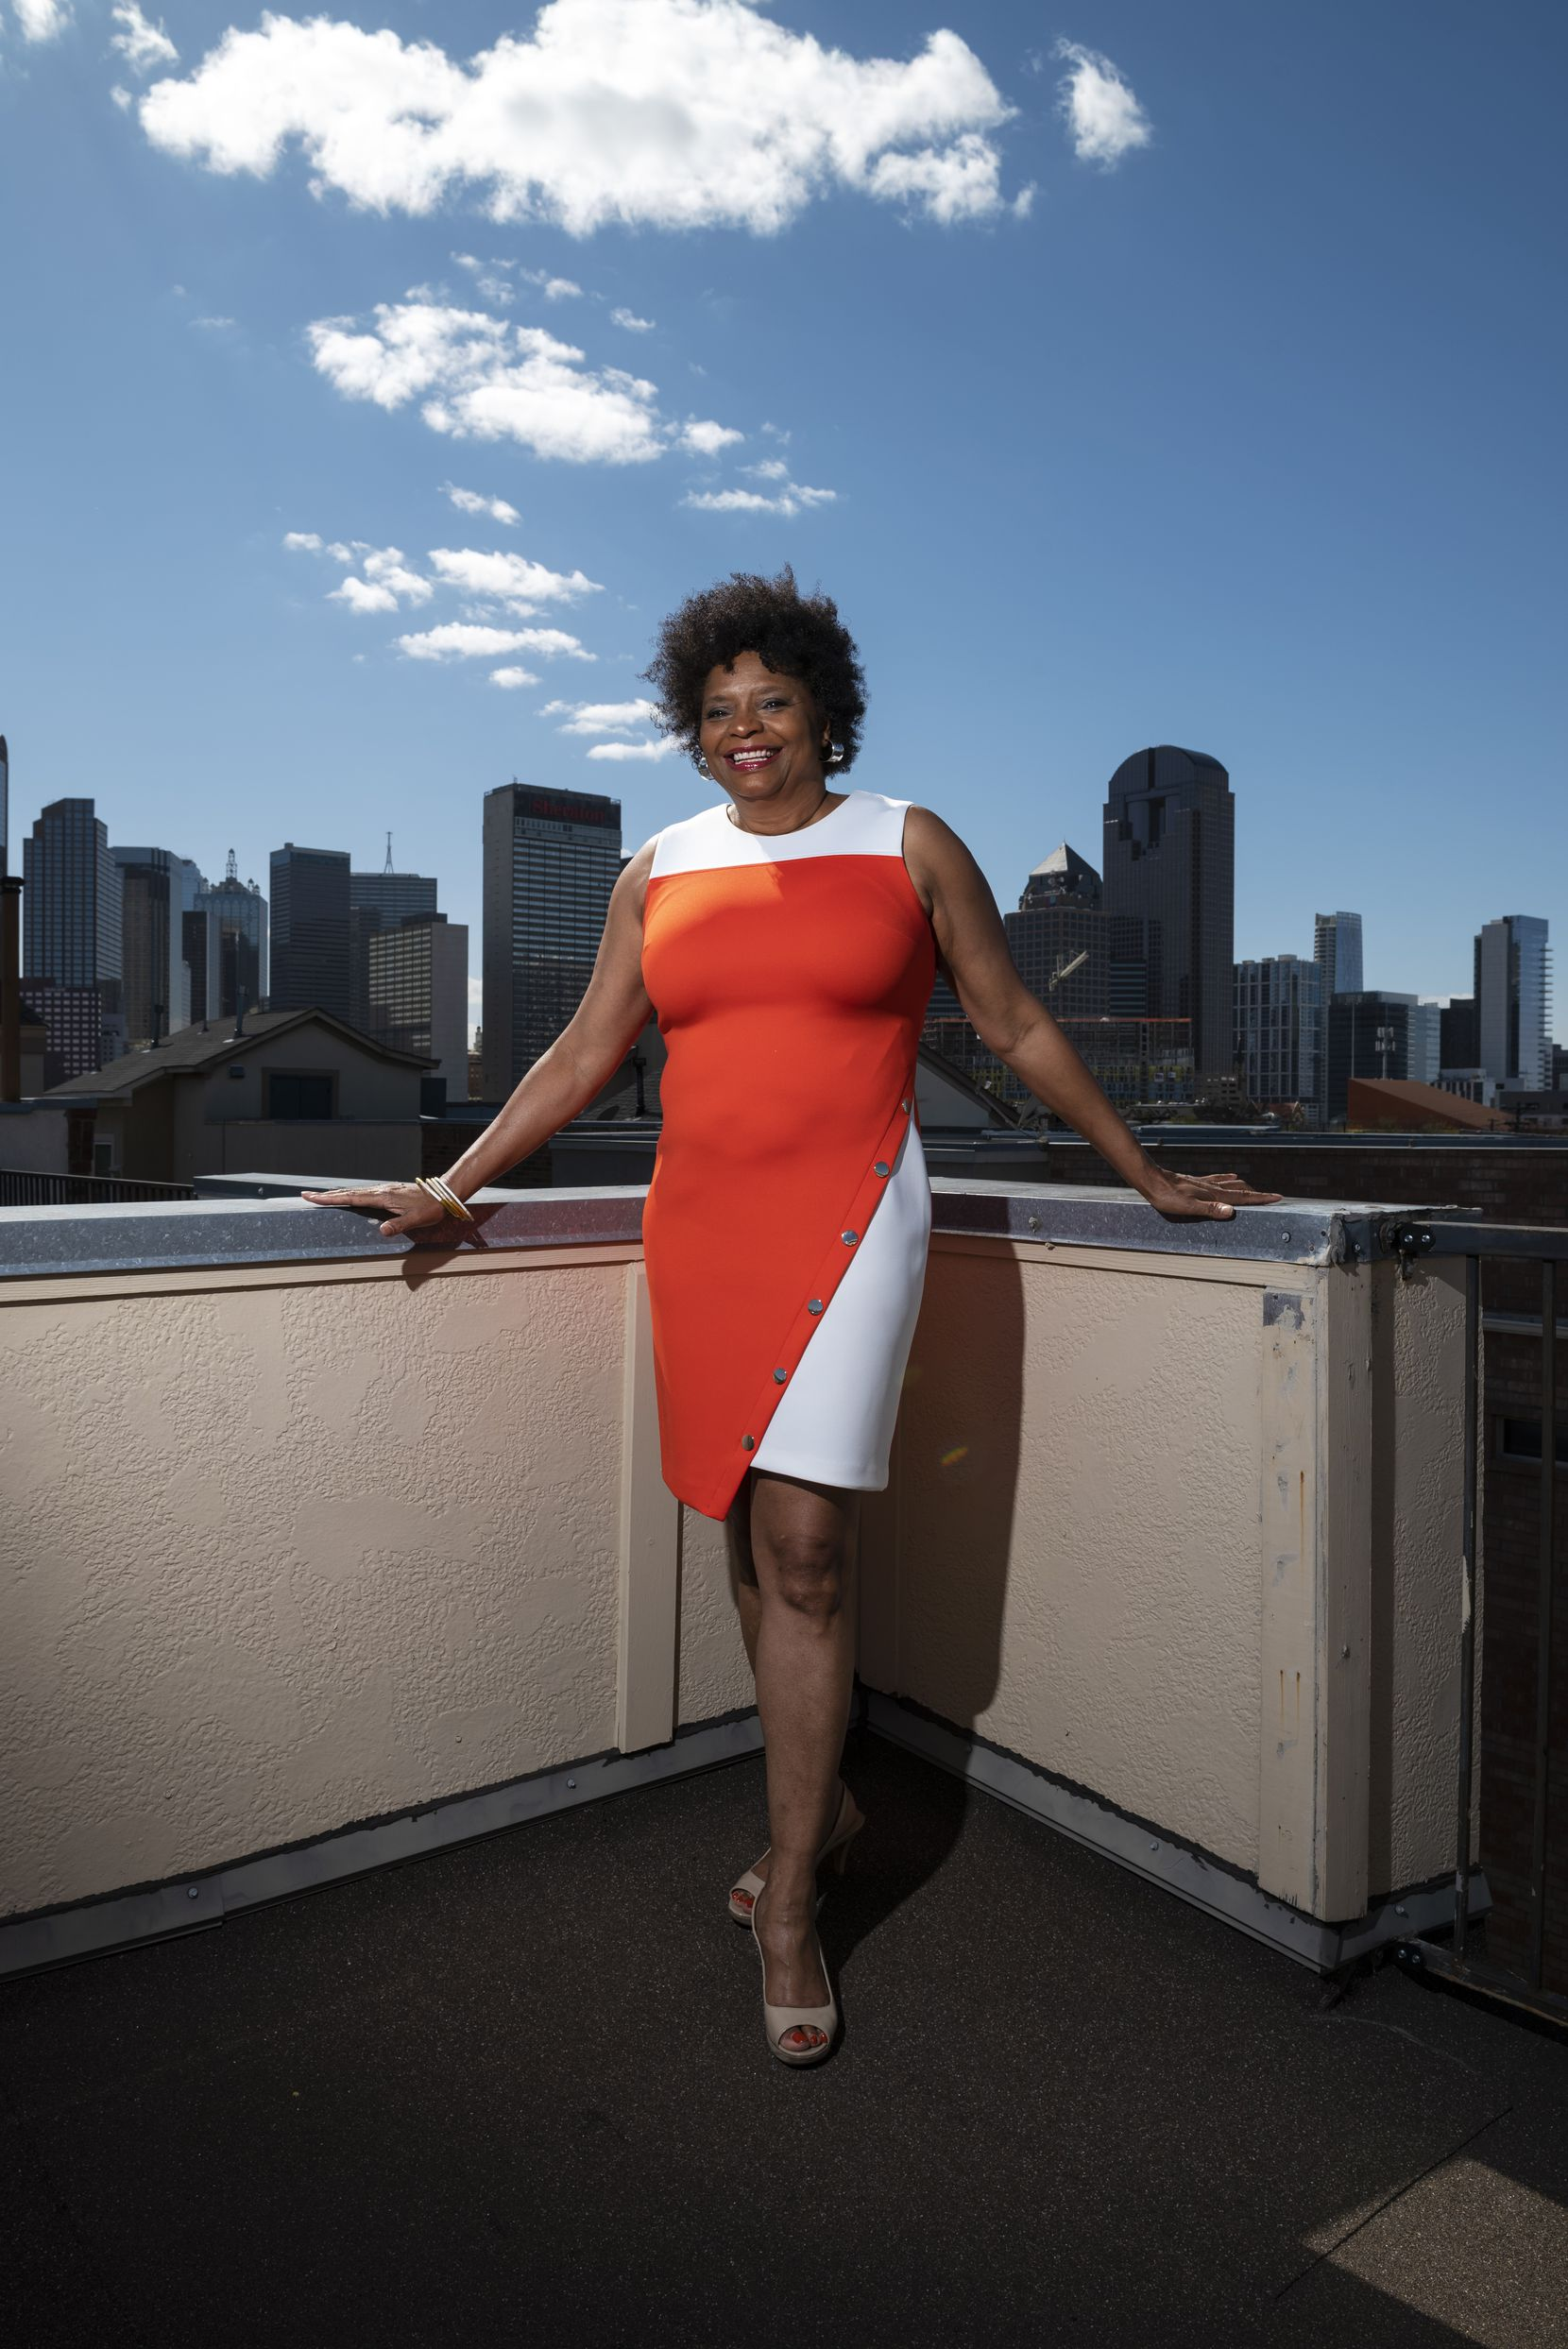 Author and literary leader Sanderia Faye outside her home in Dallas.